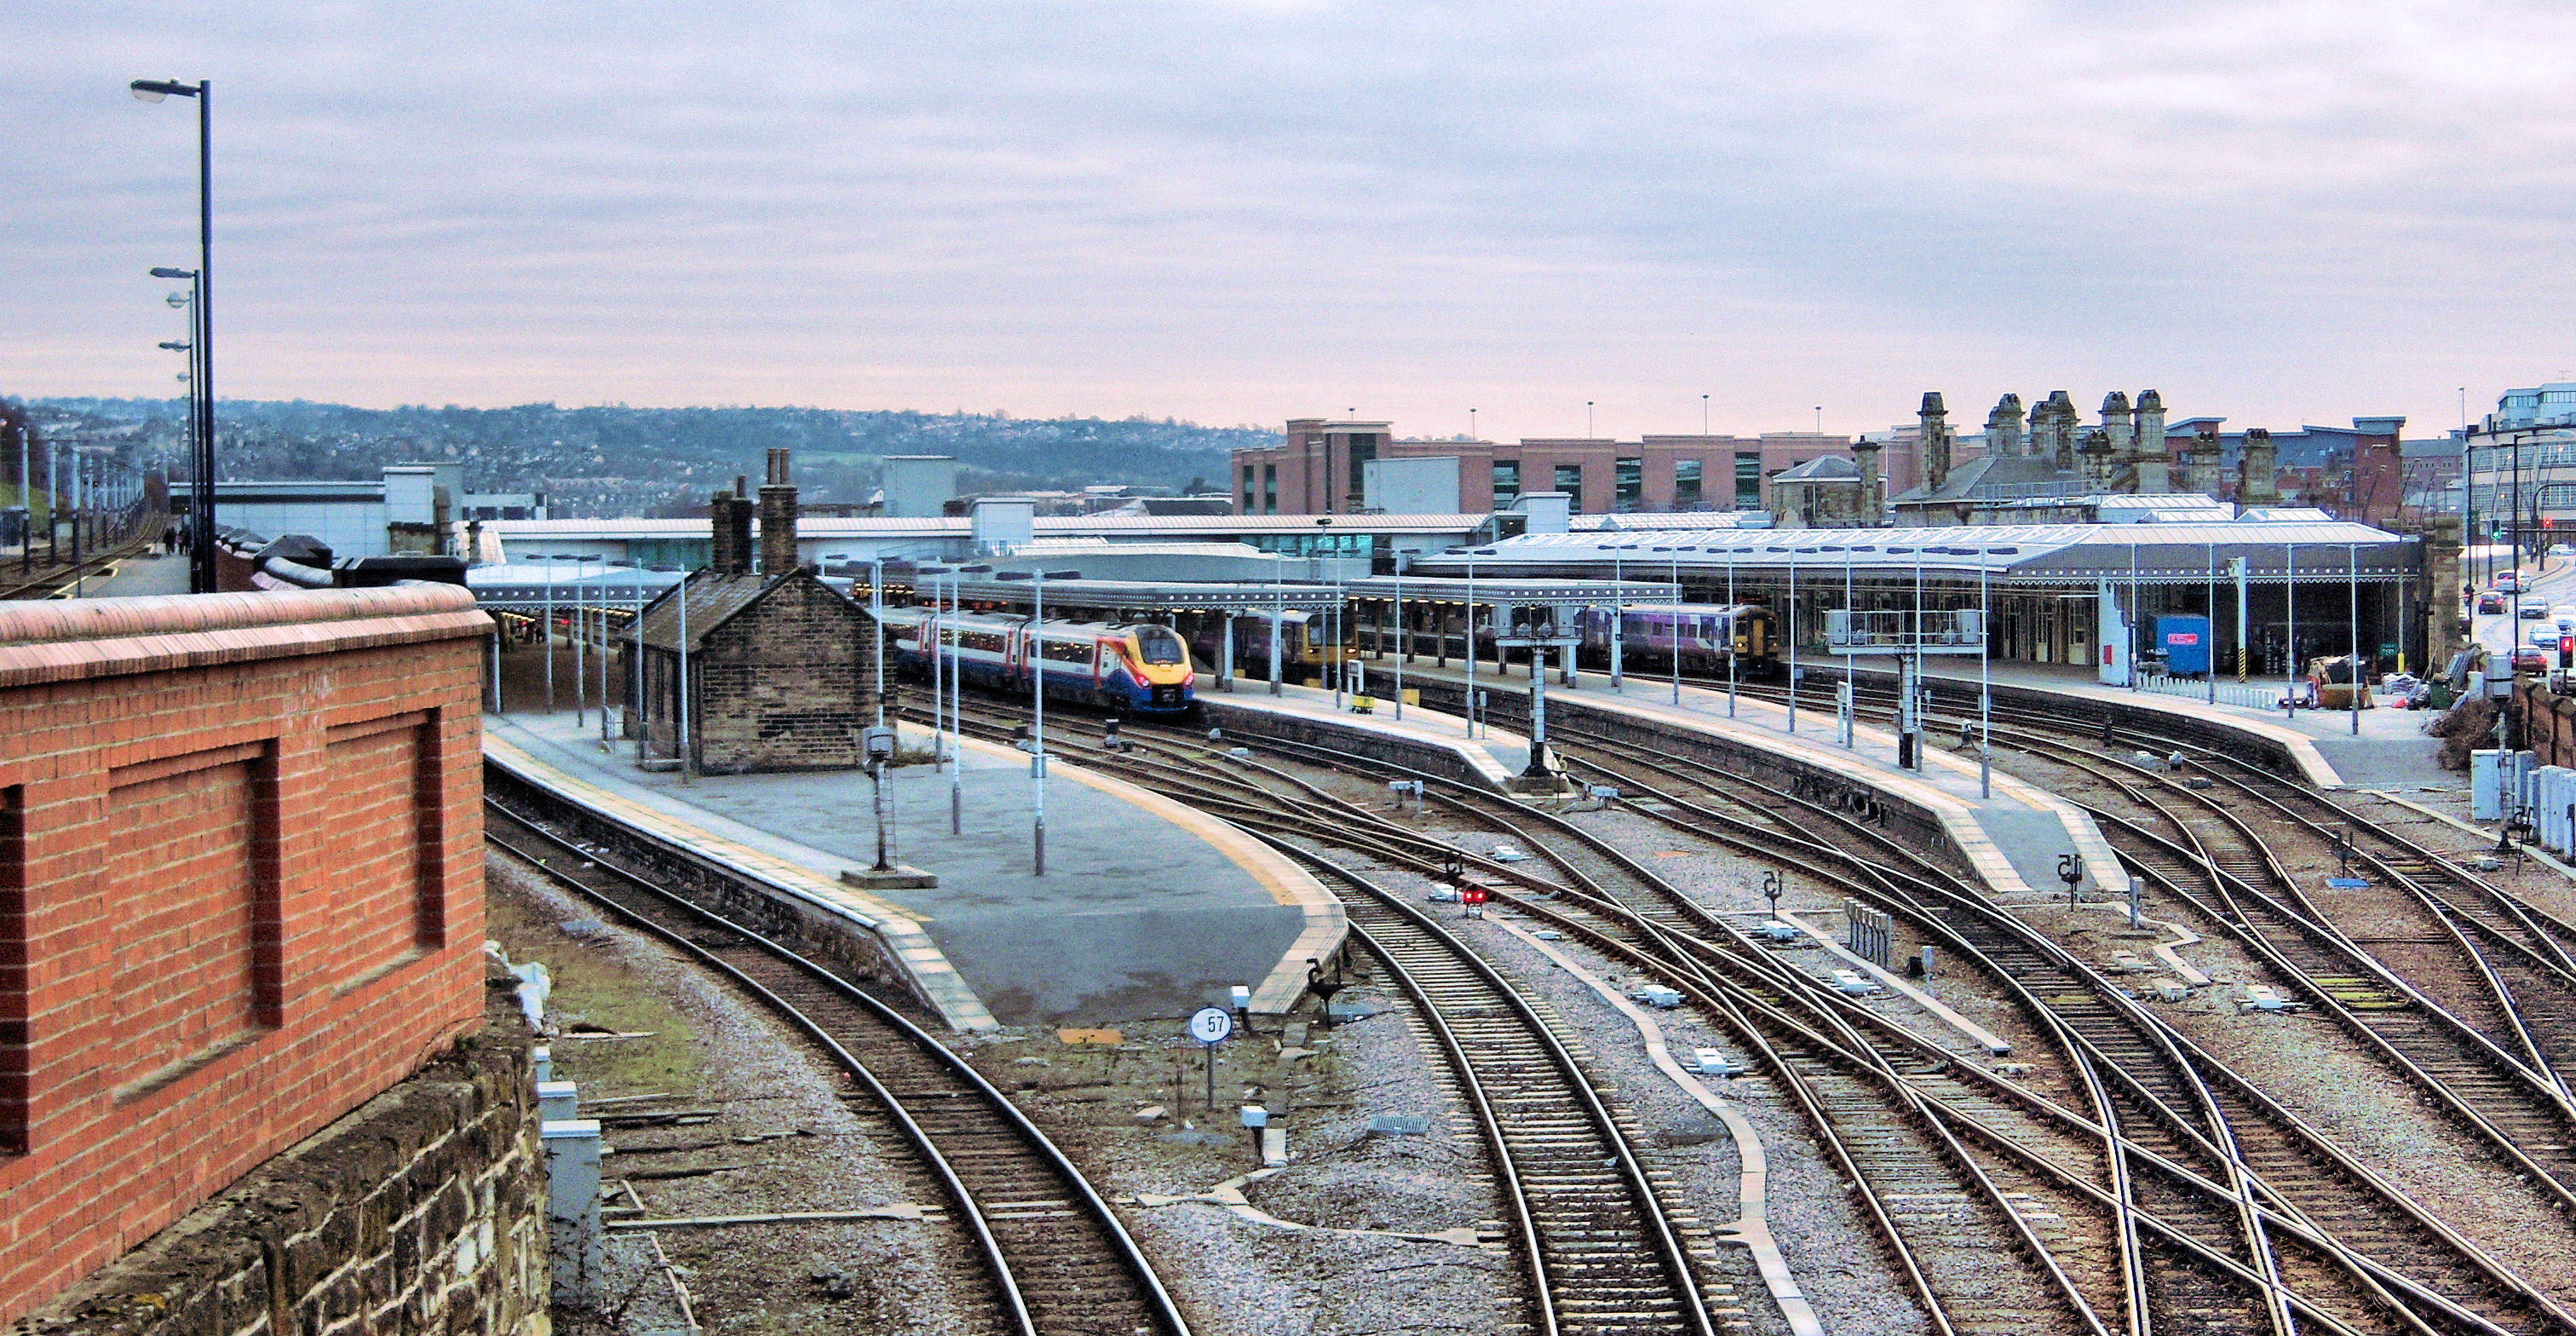 K Chesterfield File:Sheffield Station panorama.jpg - Wikimedia Commons